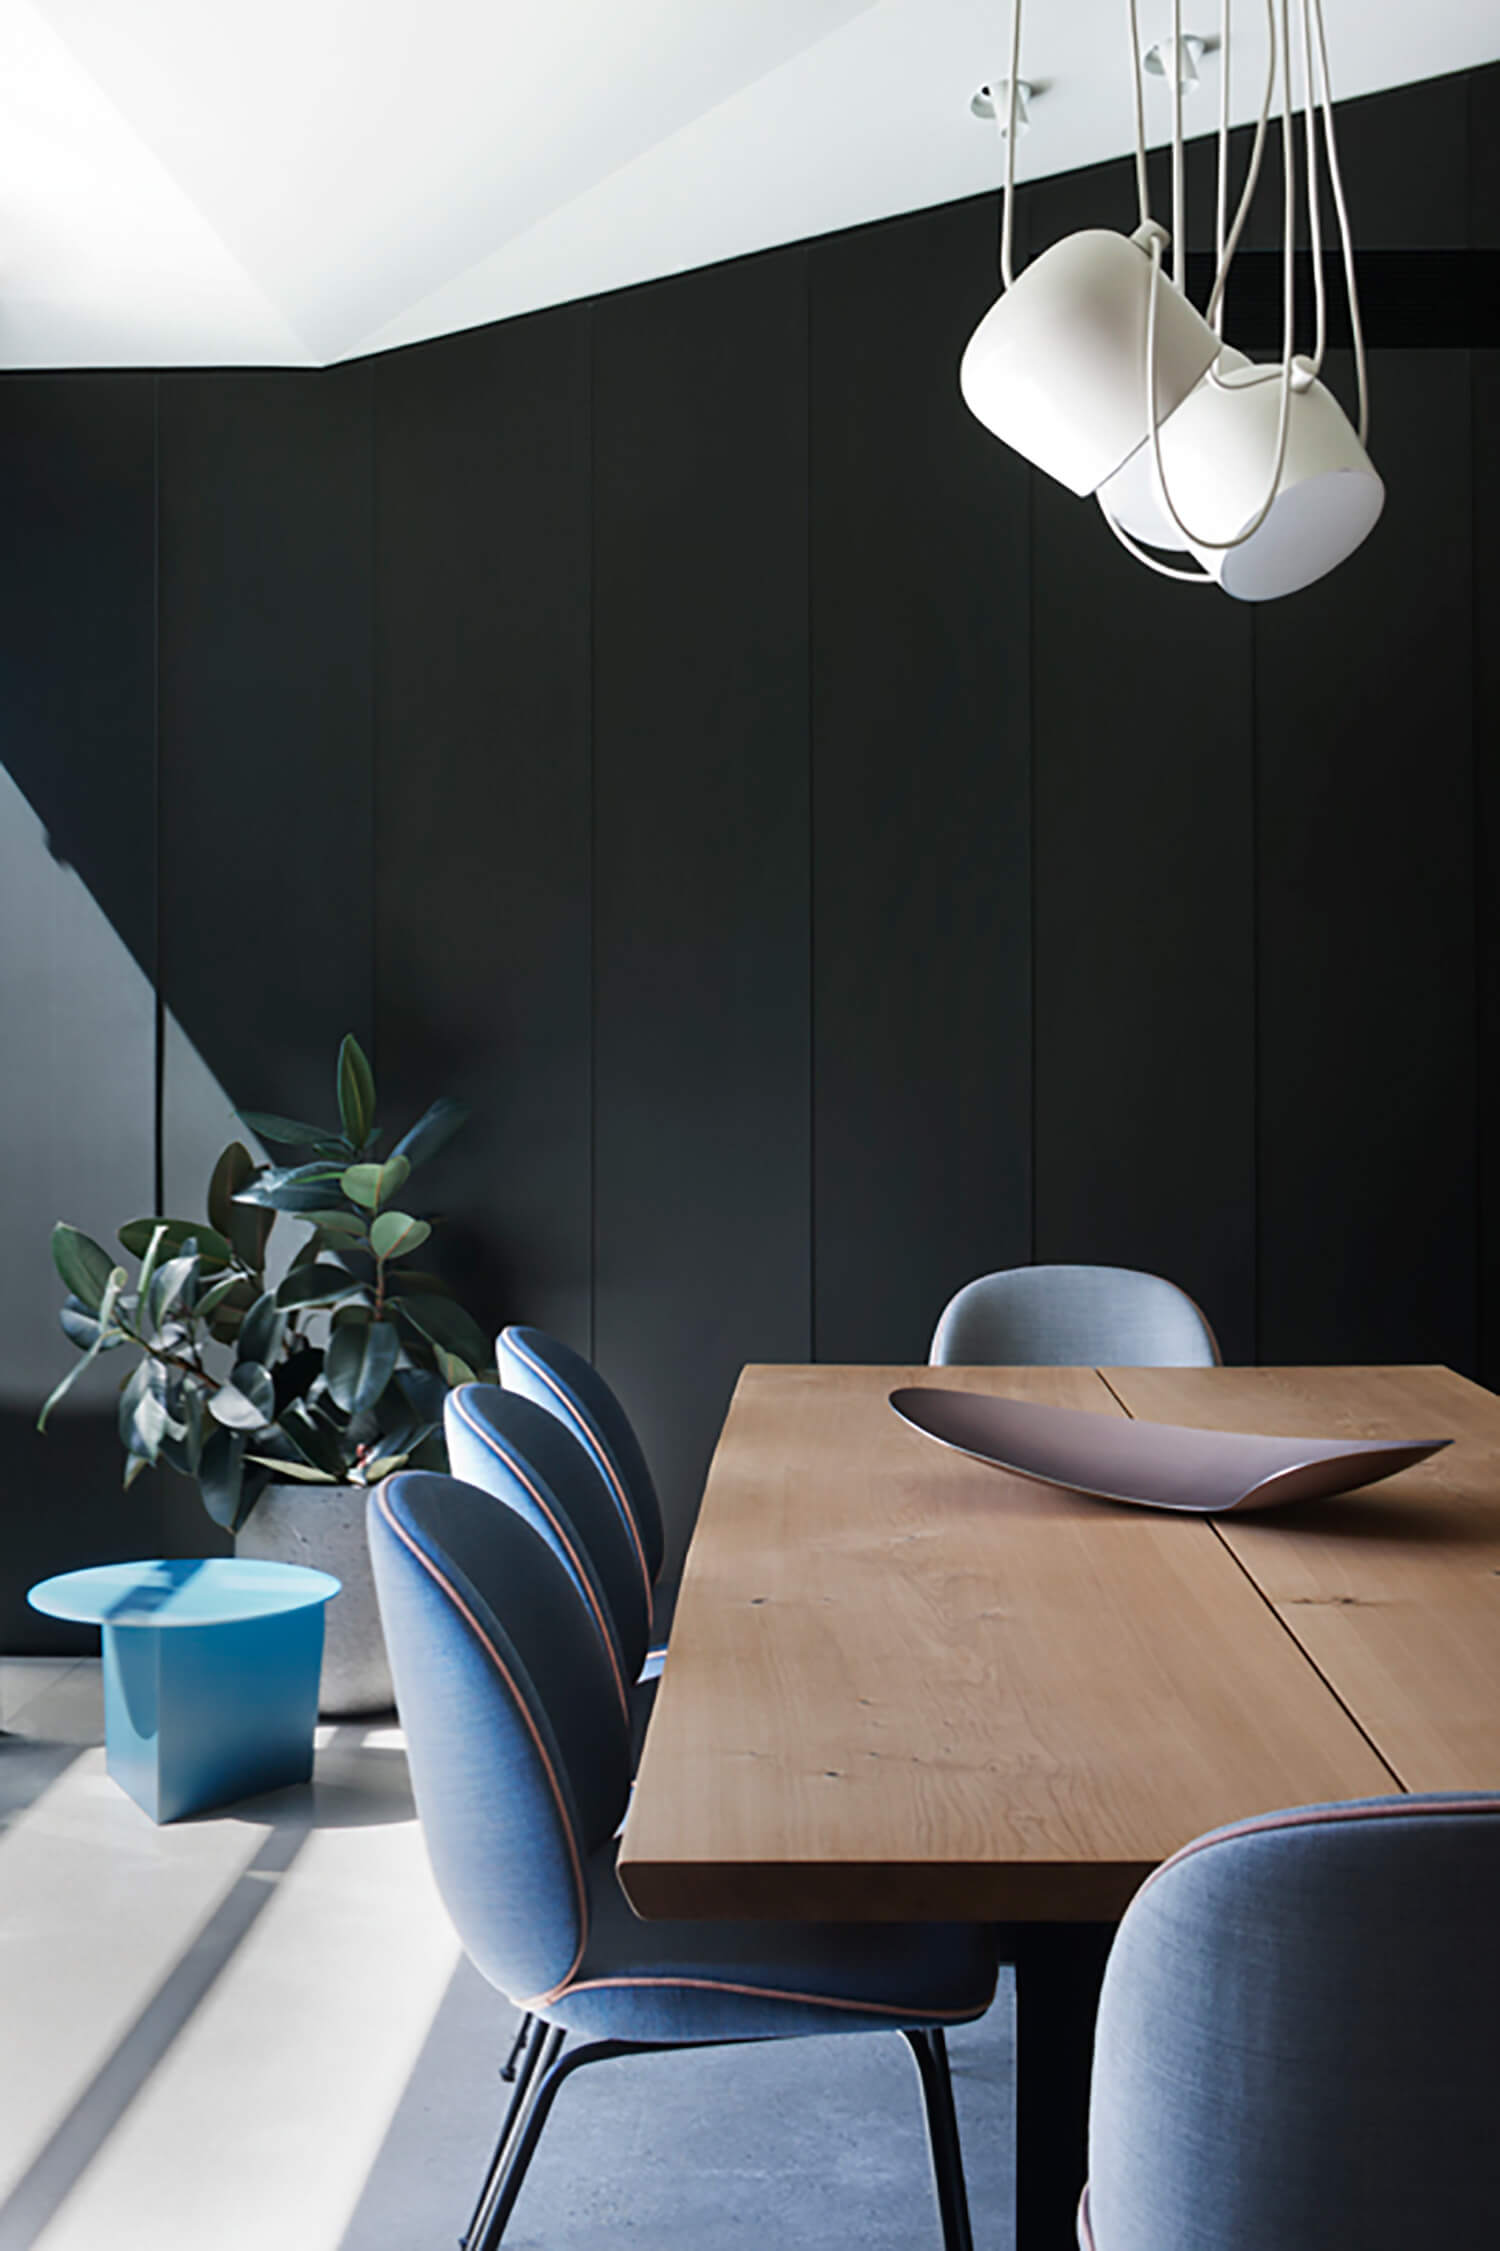 Find Out Why Aim by Flos Will Fit Every Dining Room Lighting Design! 4